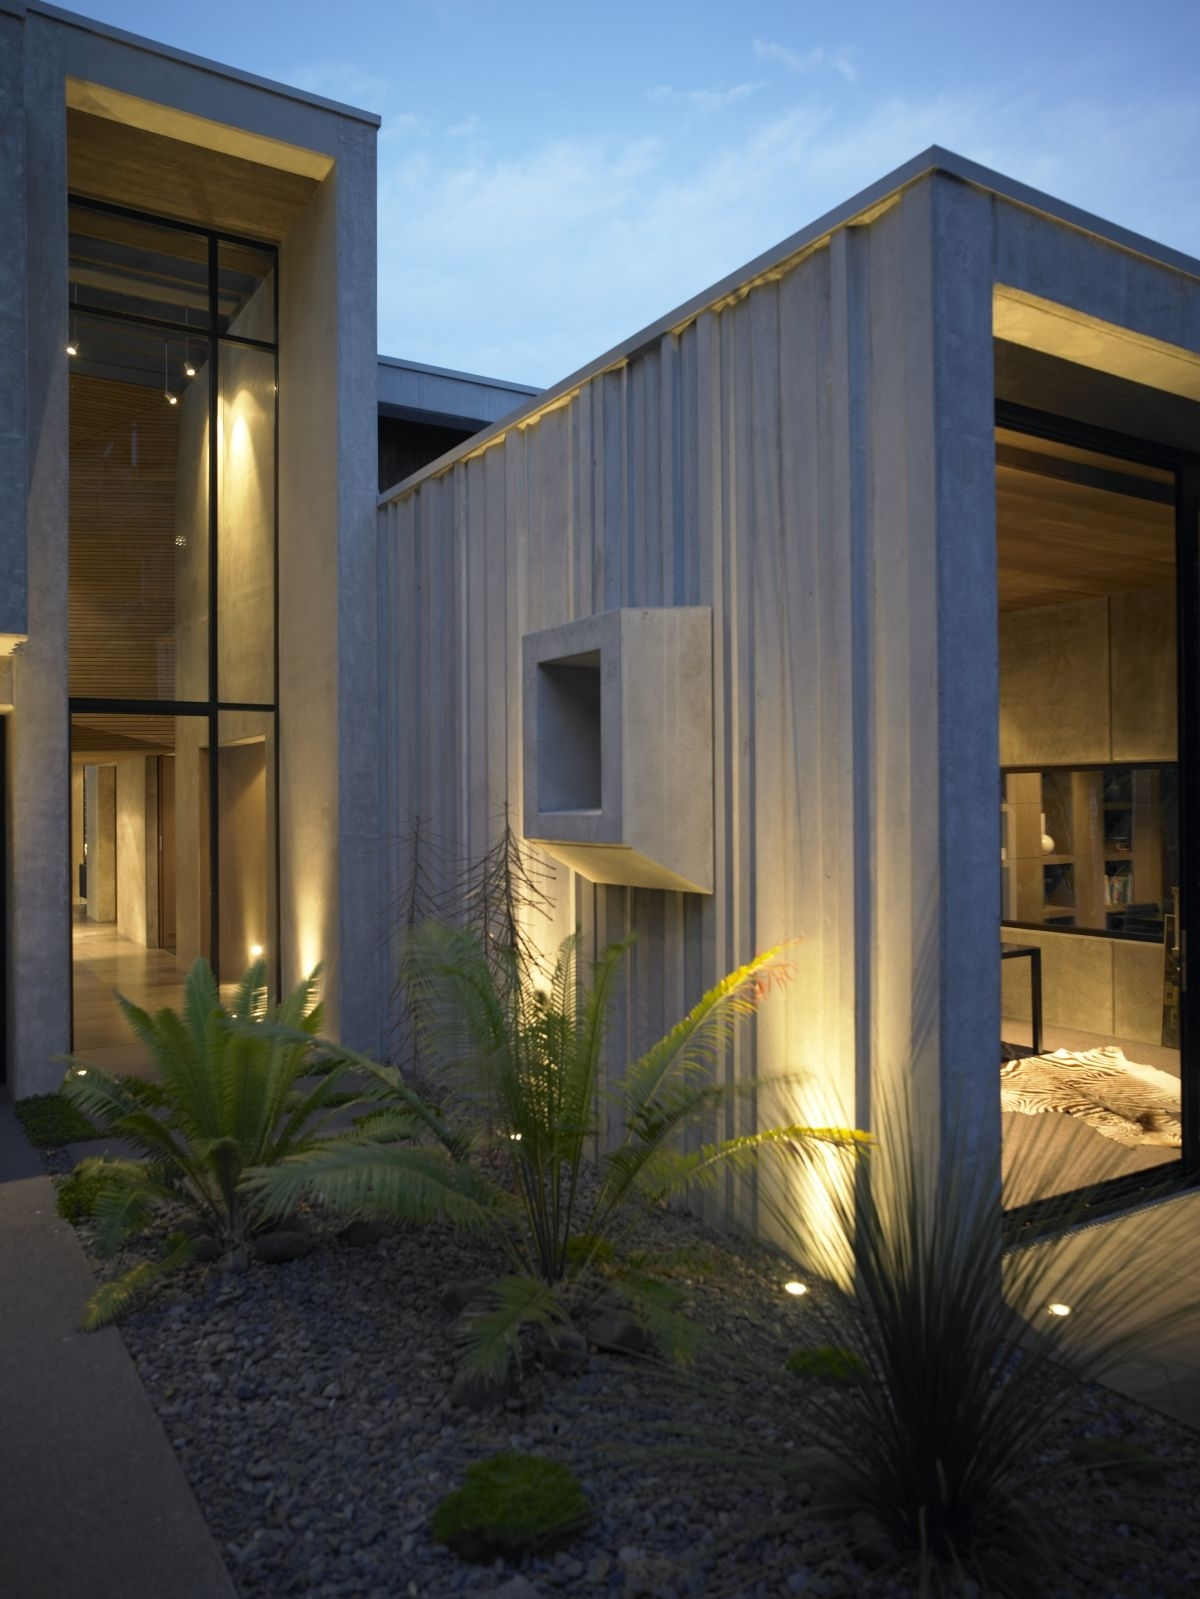 Flat Roofing House Design Feat Modern Outdoor Wall Lighting Idea And within Outdoor Lanterns For House (Image 6 of 20)